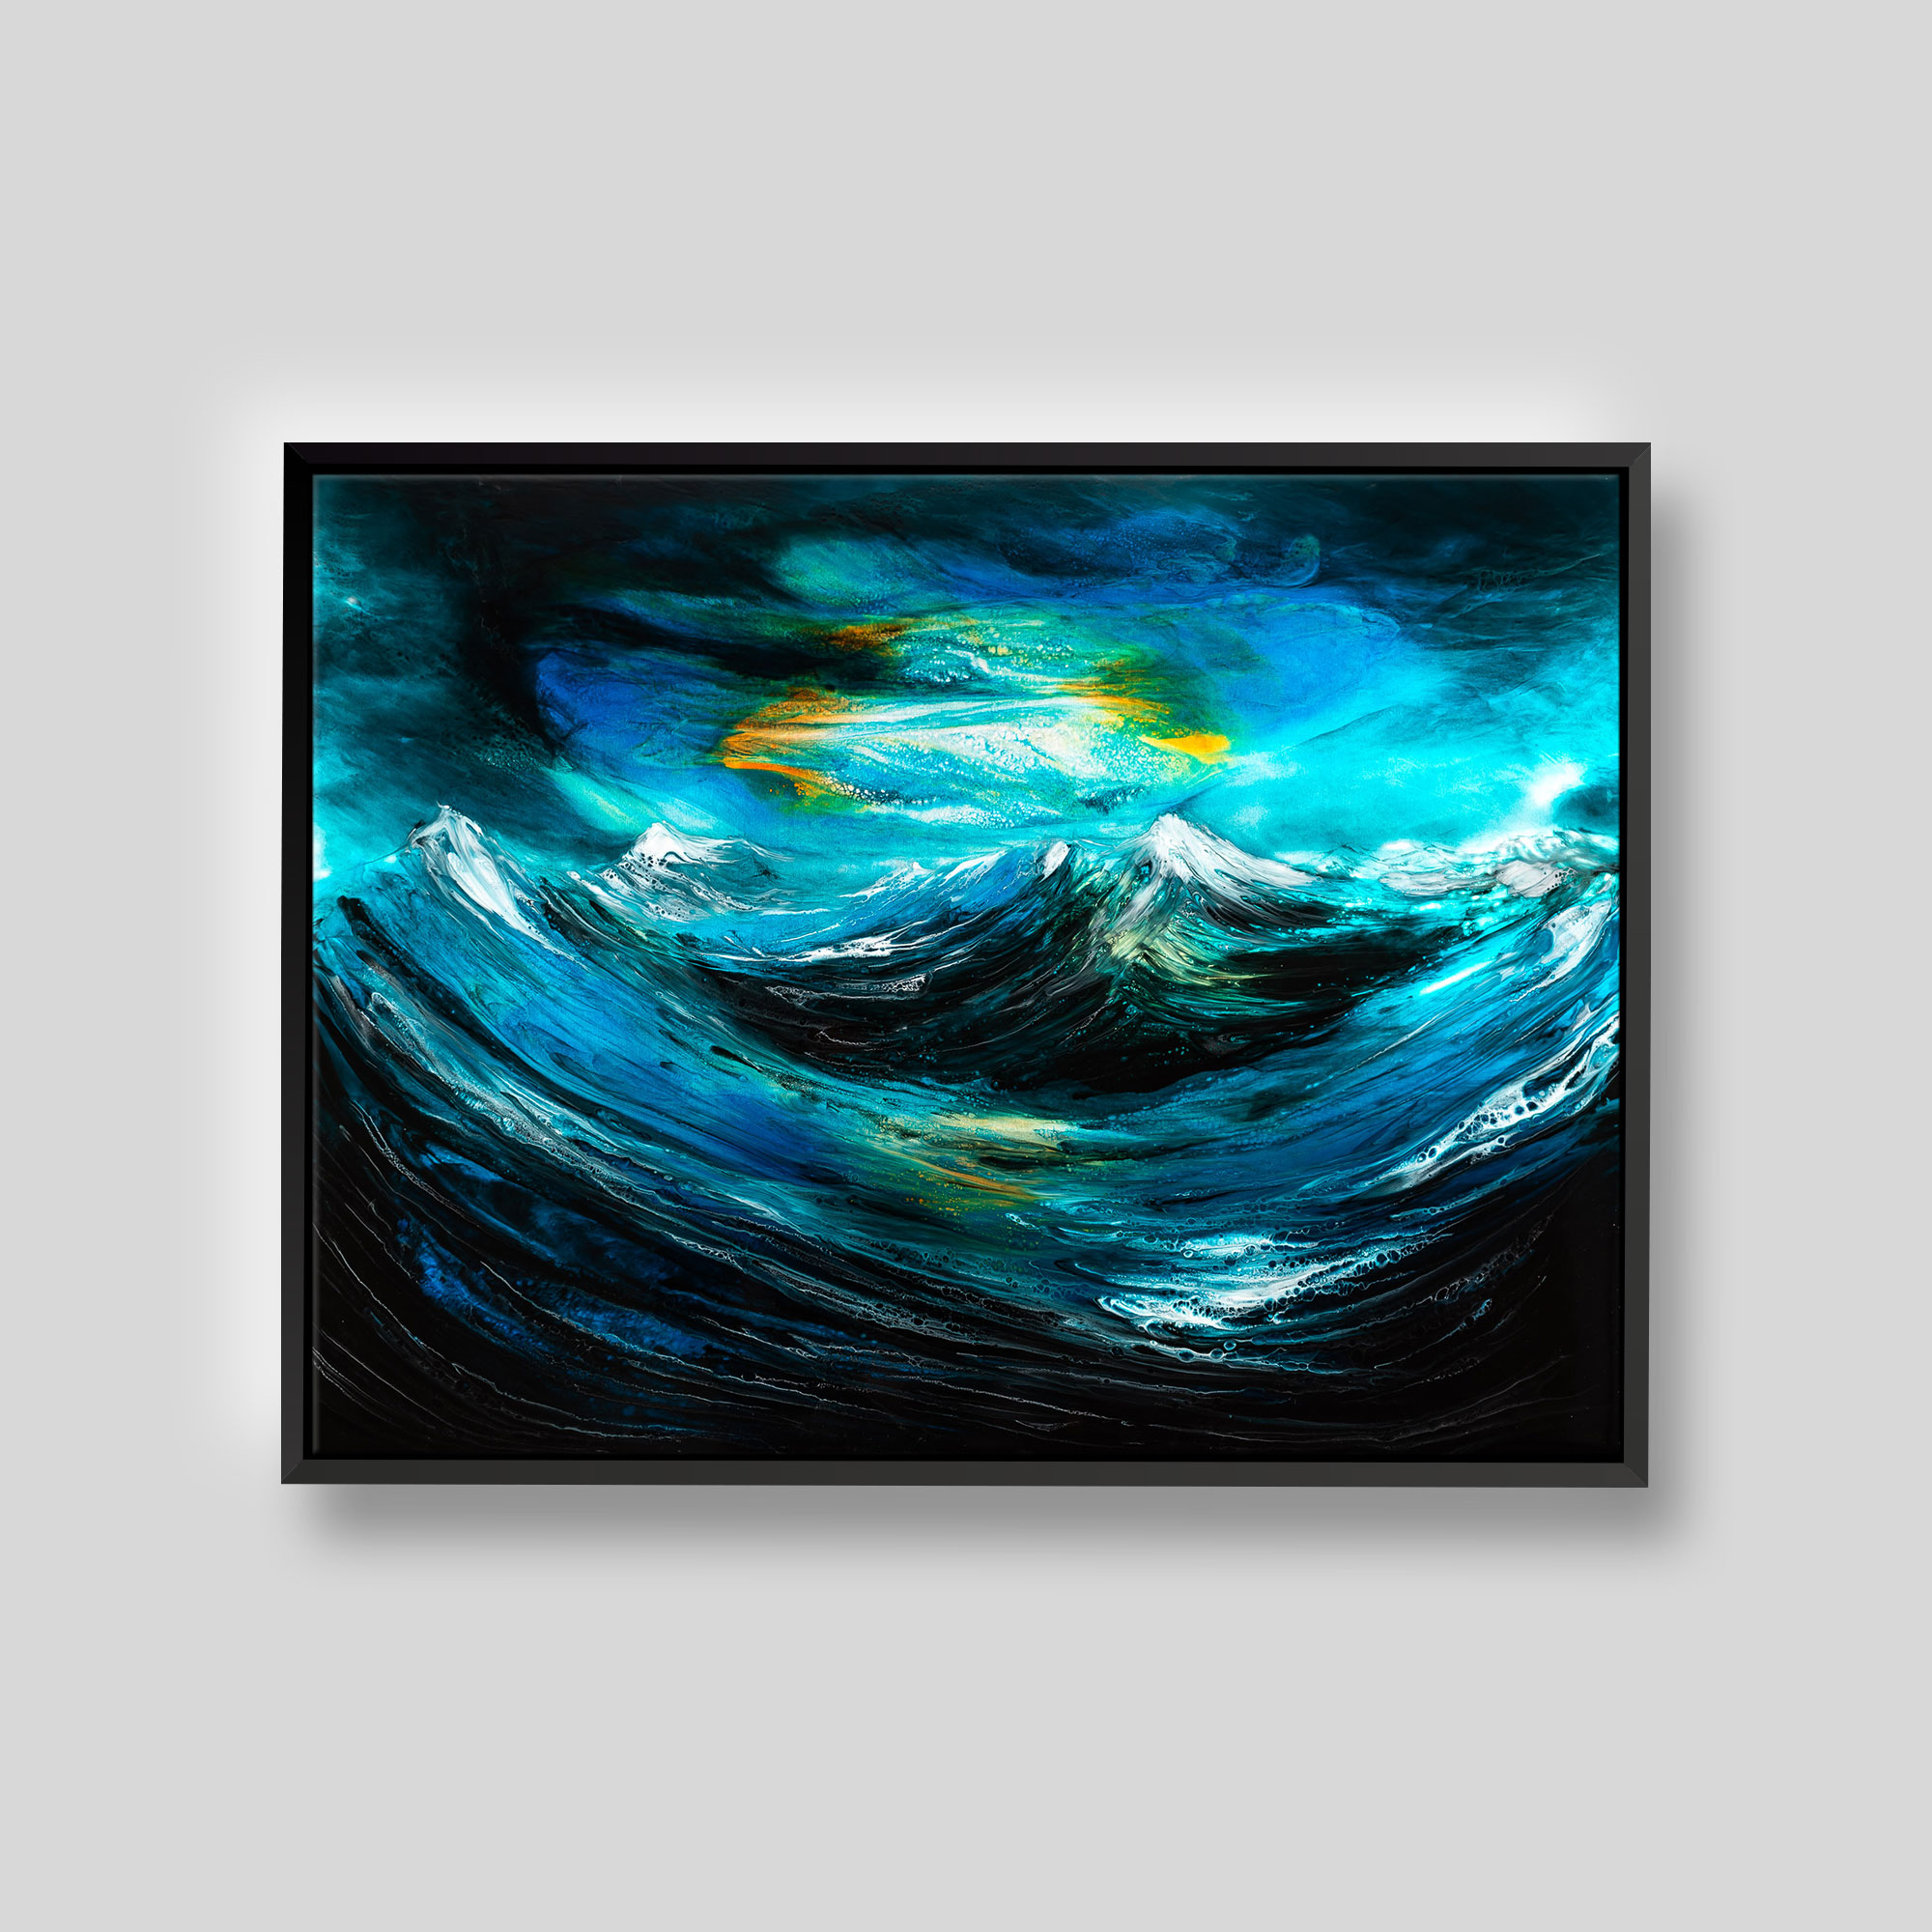 White Caps by Paul Kenton, UK Contemporary artist, a Original Ocean painting from his Oceans and Mountainscapes art collection